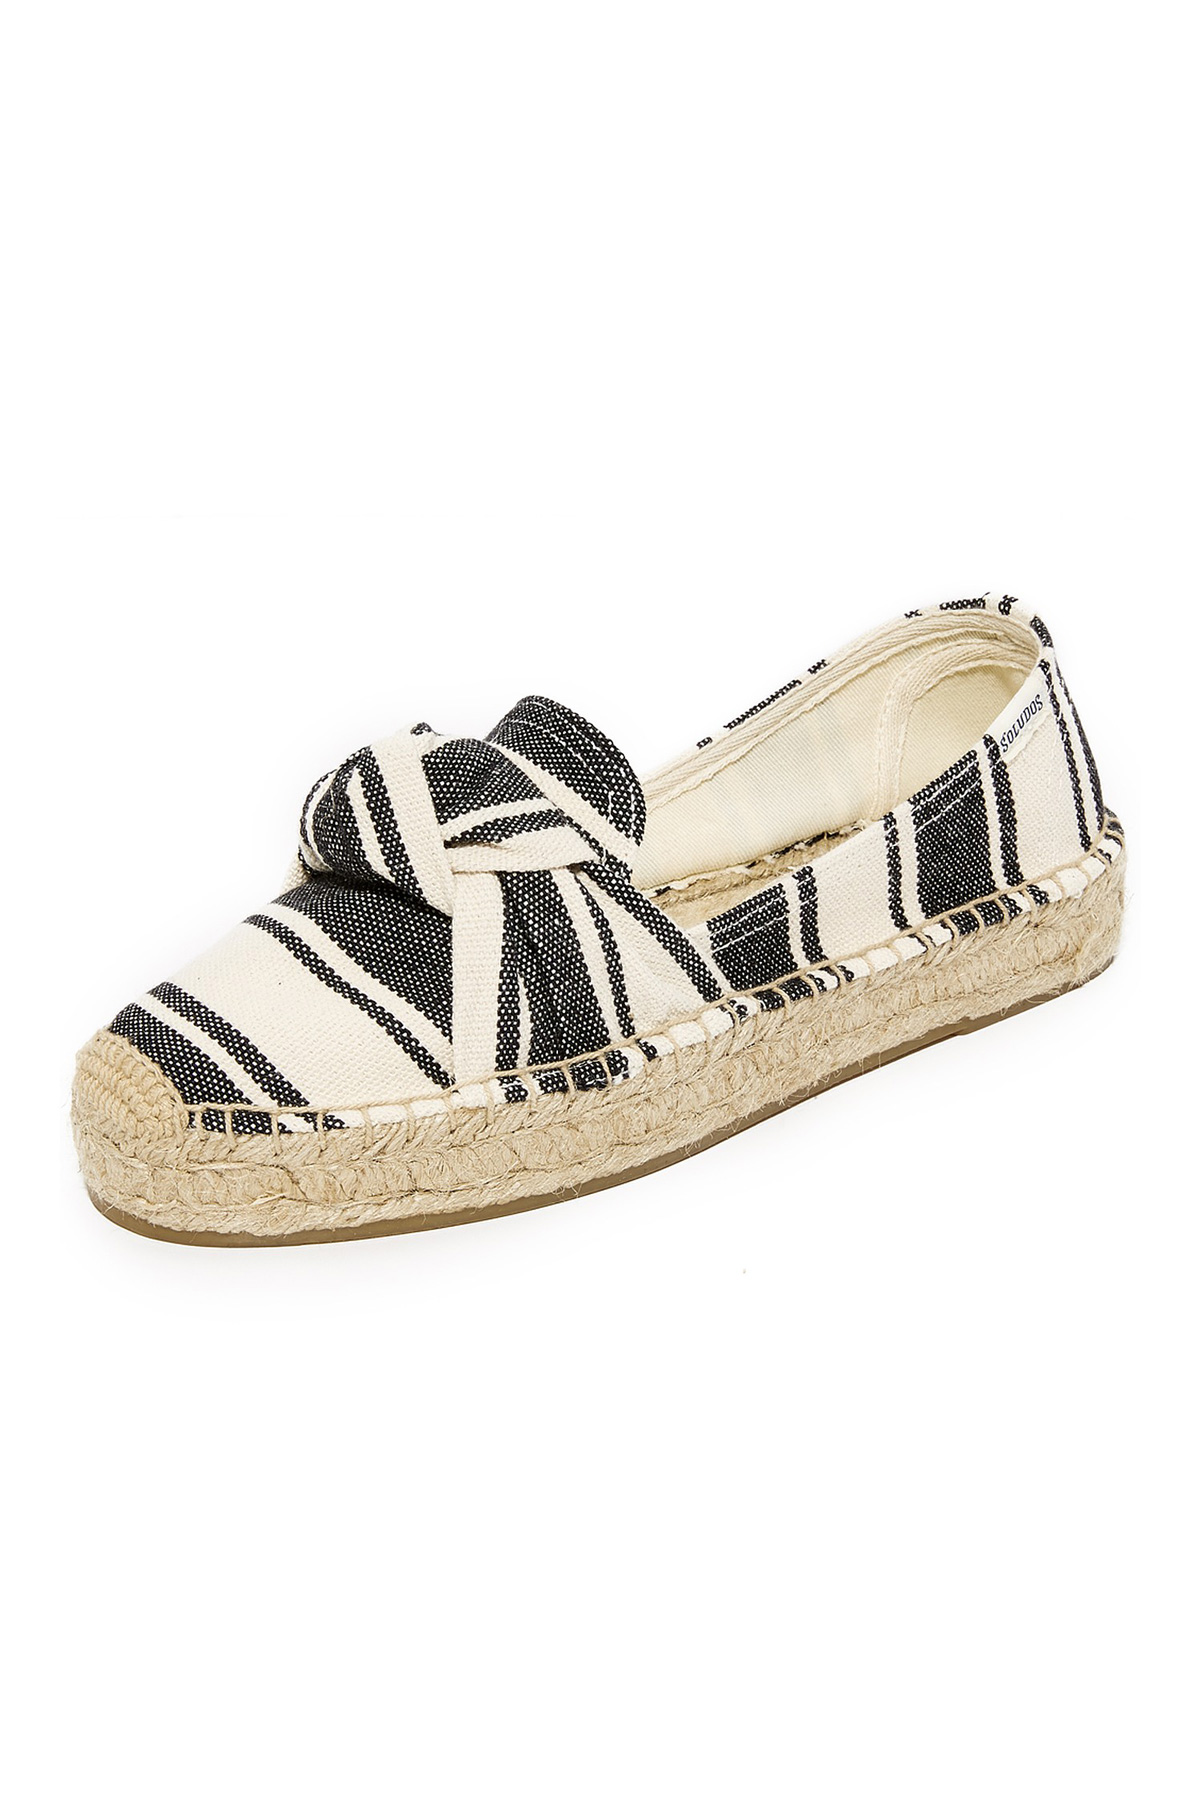 Soludos Knotted Platform Smoking Slippers